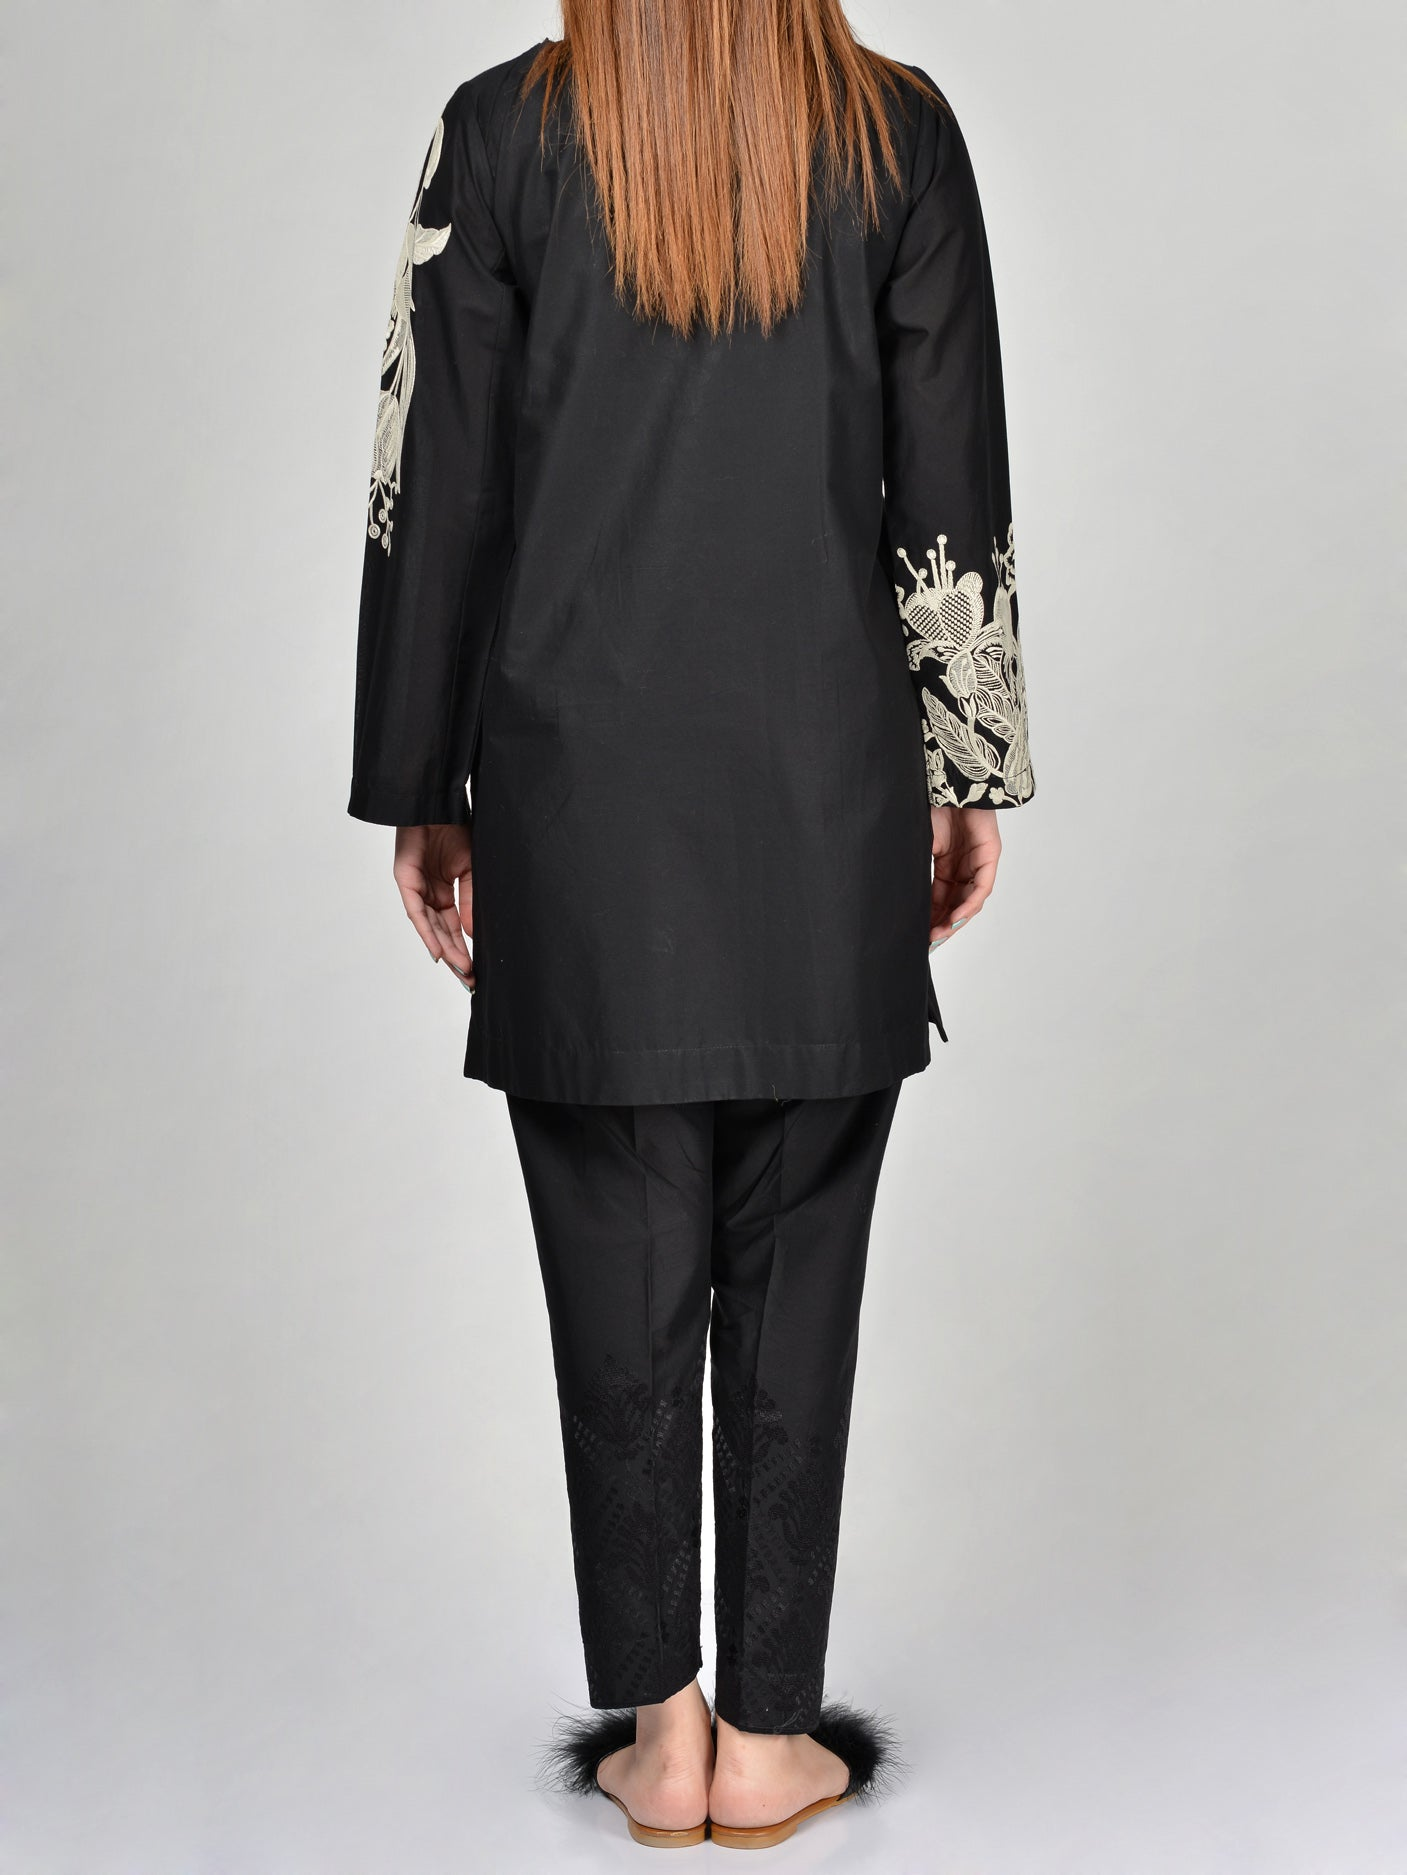 Limelight Embroidered Cambric Shirt P1992 Shop Online in Pakistan | Limelight.pk